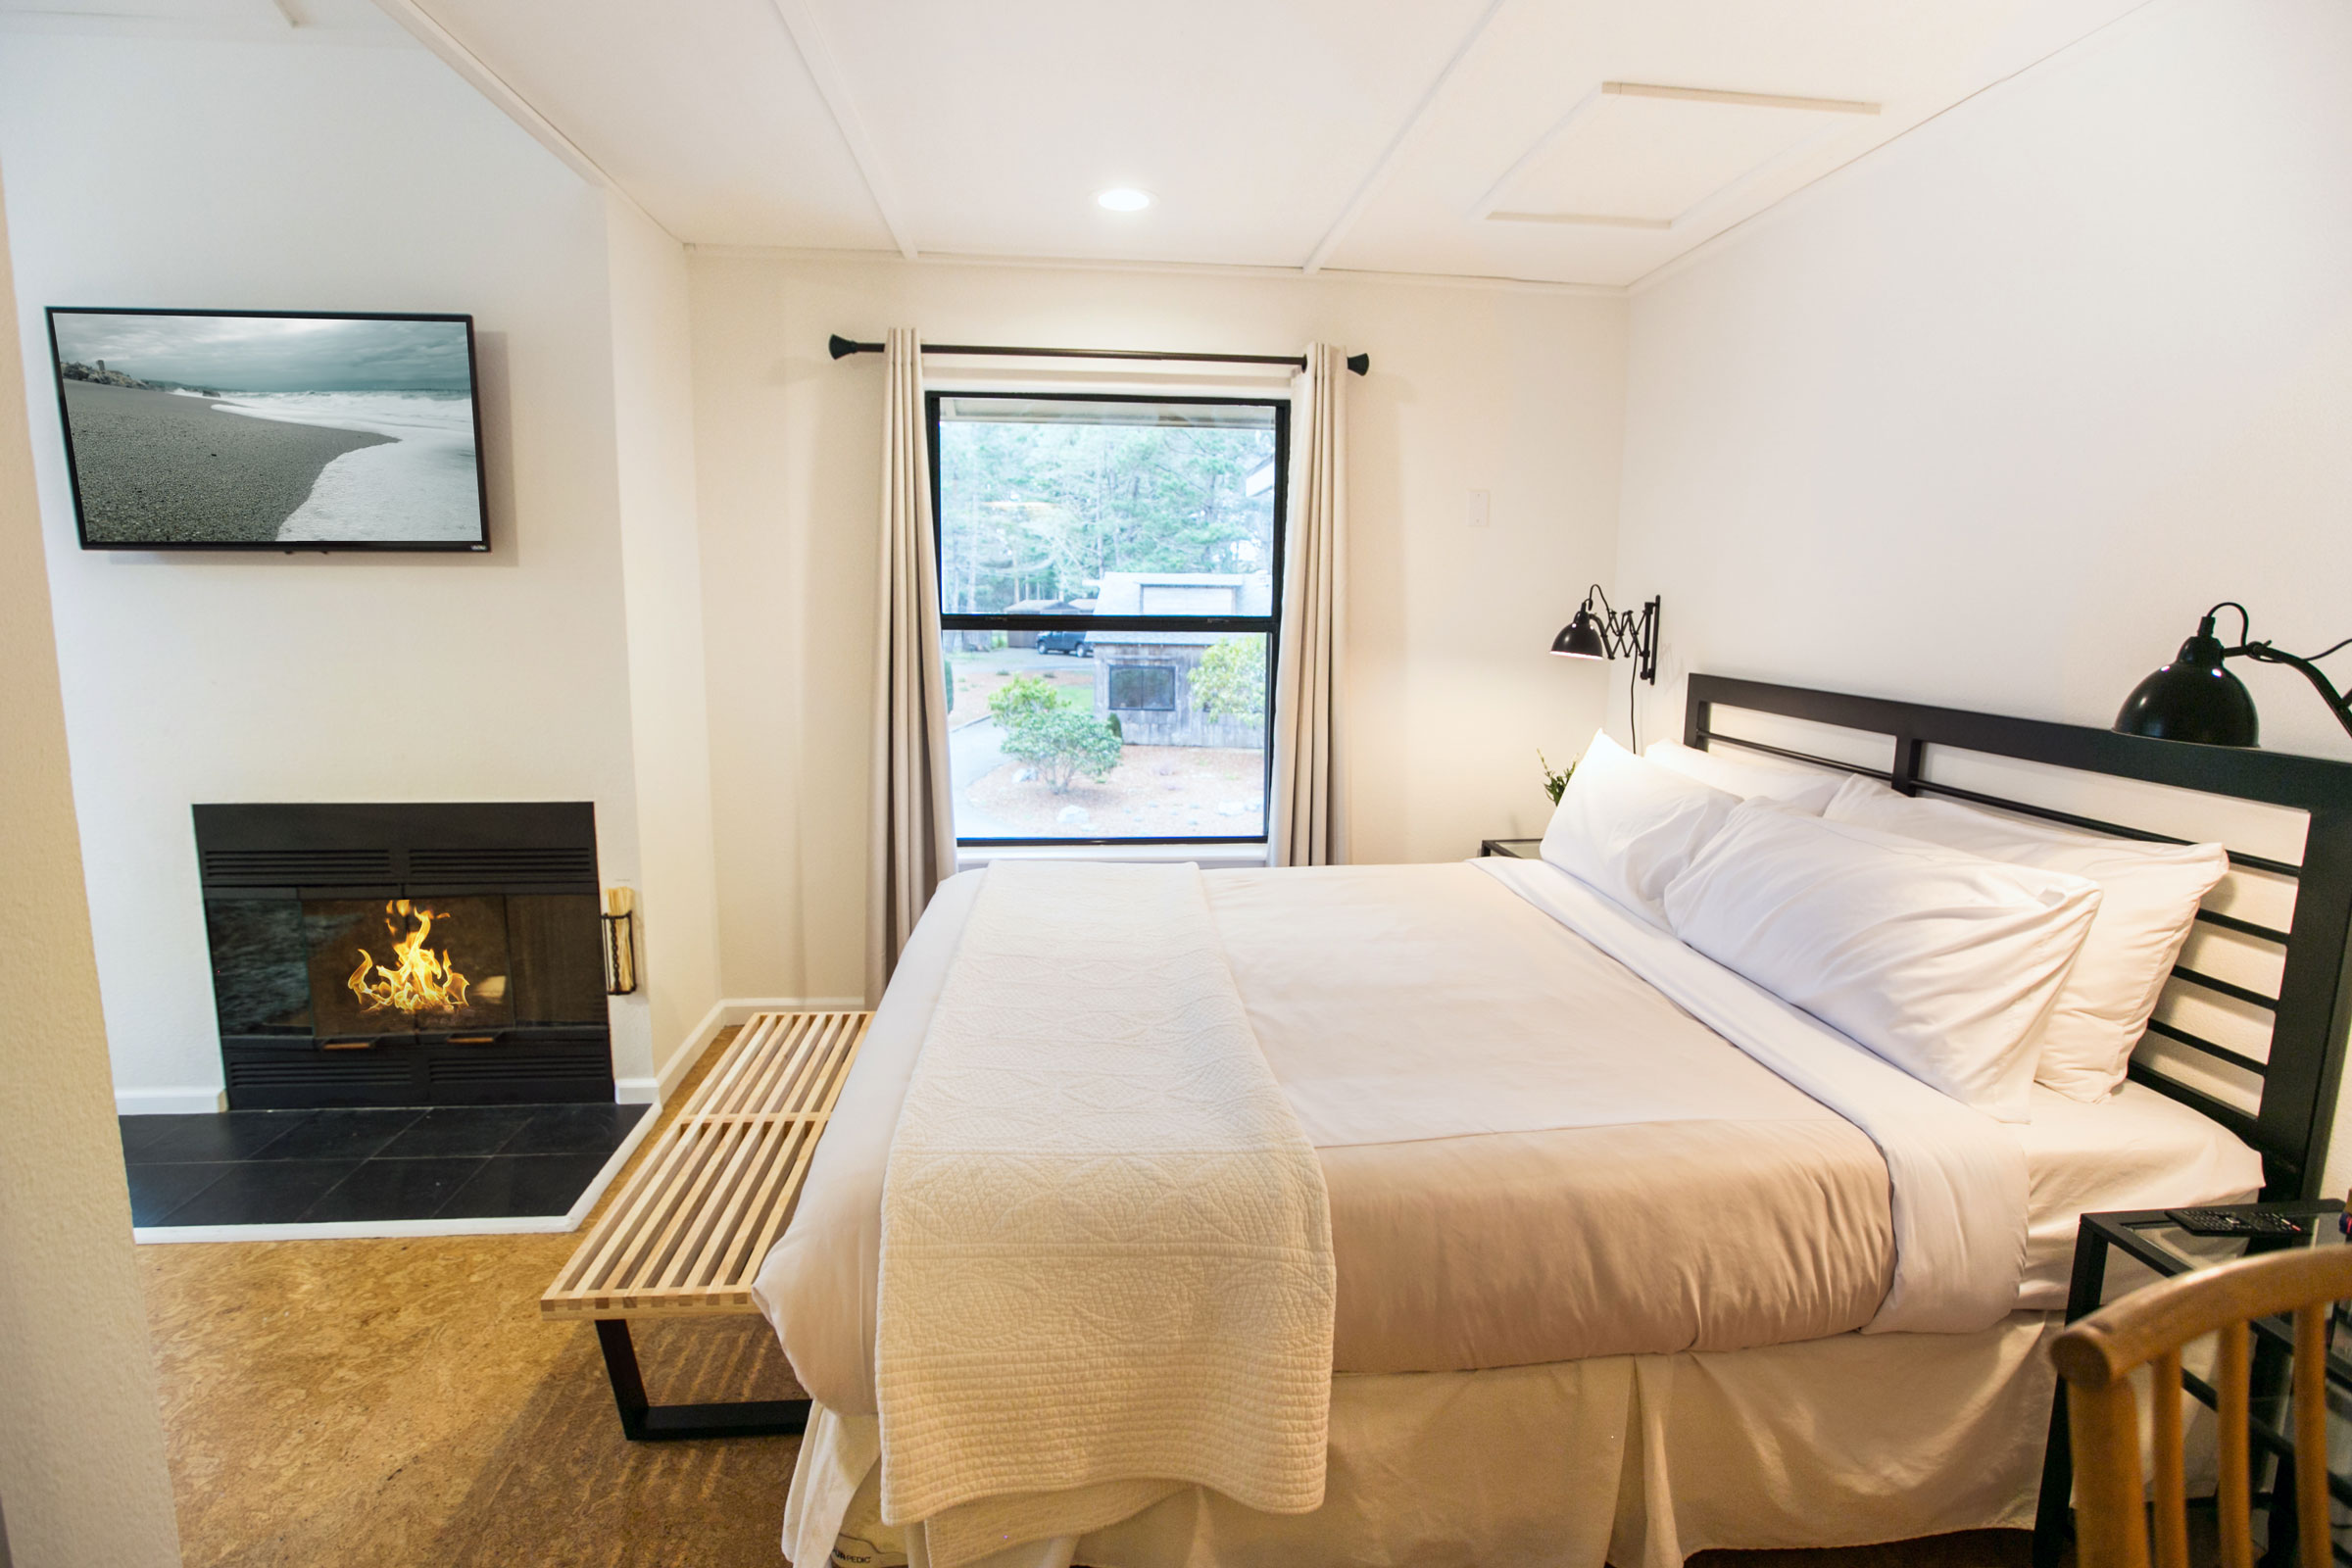 Room 202 in the Lodge at Glendeven with queen bed next to wood burning fireplace and flat screen TV.